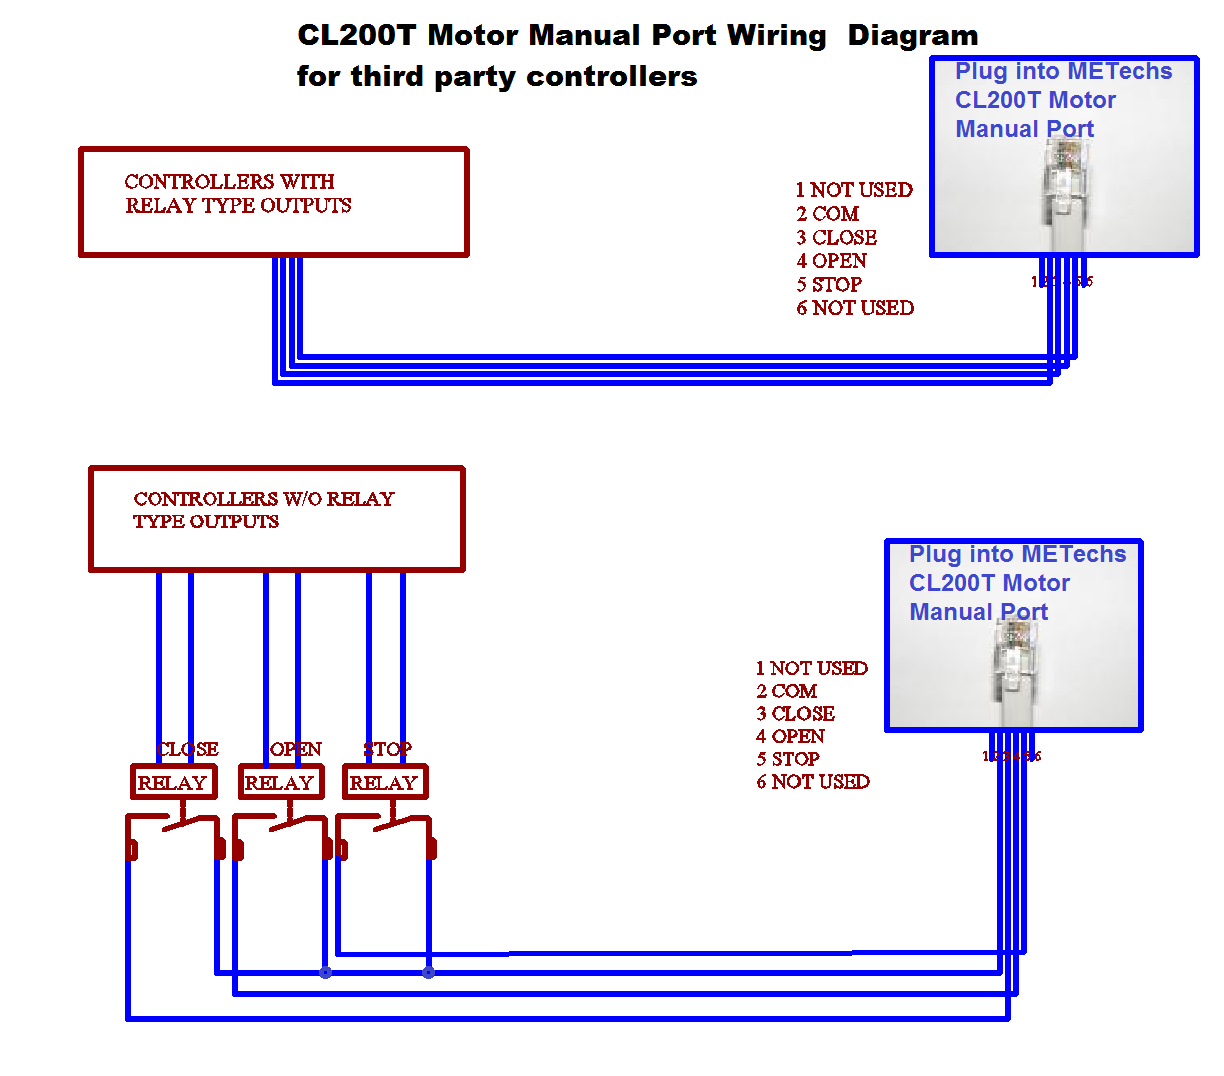 Port_Wiring_Diagram_CL200T_controller wiring diagram for cl200t controlled by third part controller Relay Switch Wiring Diagram at nearapp.co